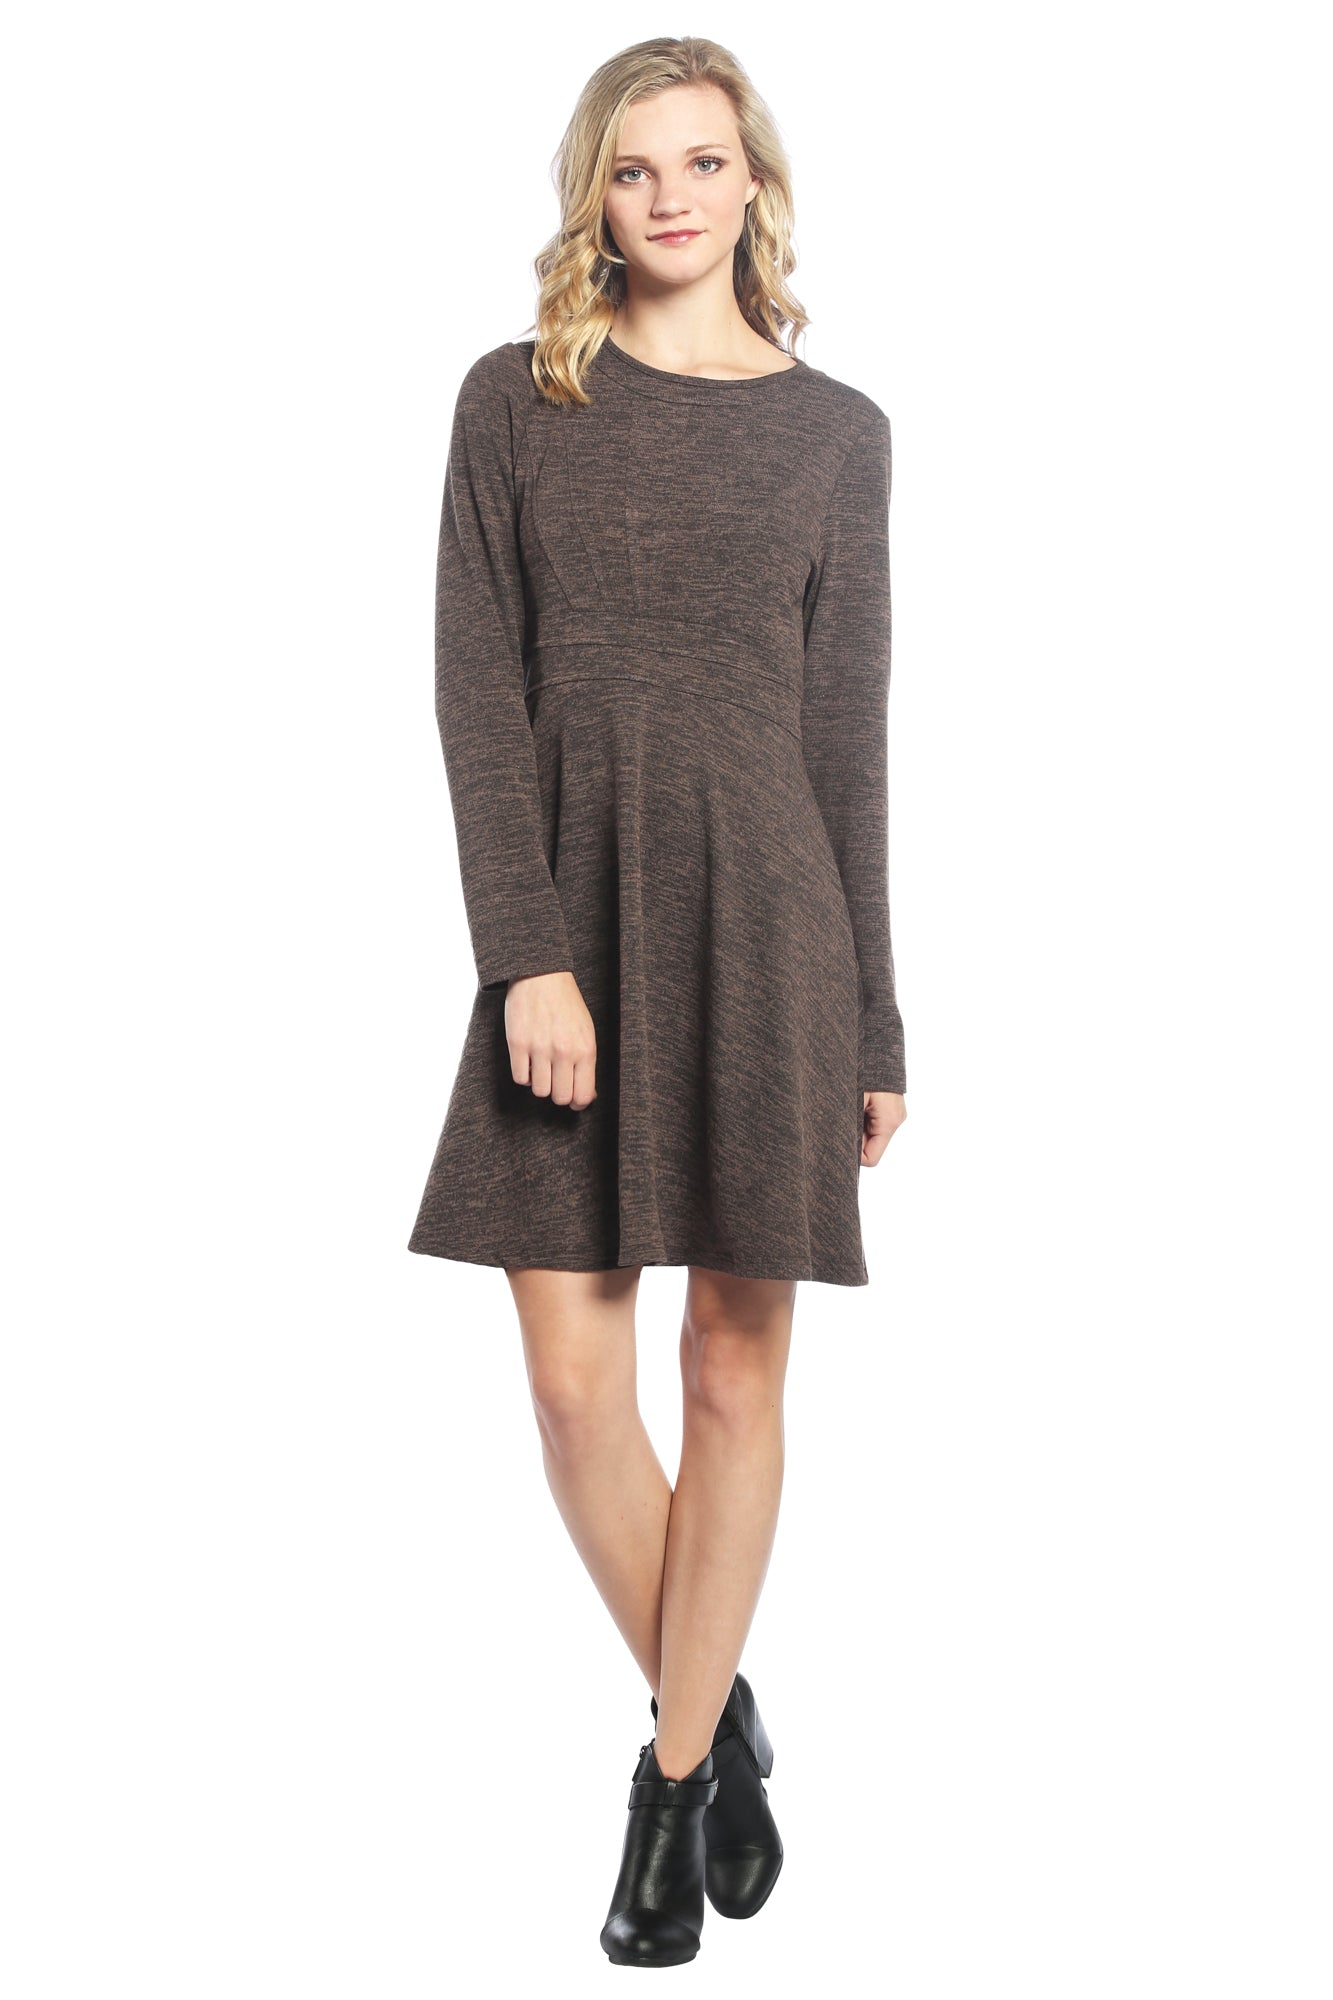 Long Sleeve Sweater Dress with Sunburst Bodice in Brown